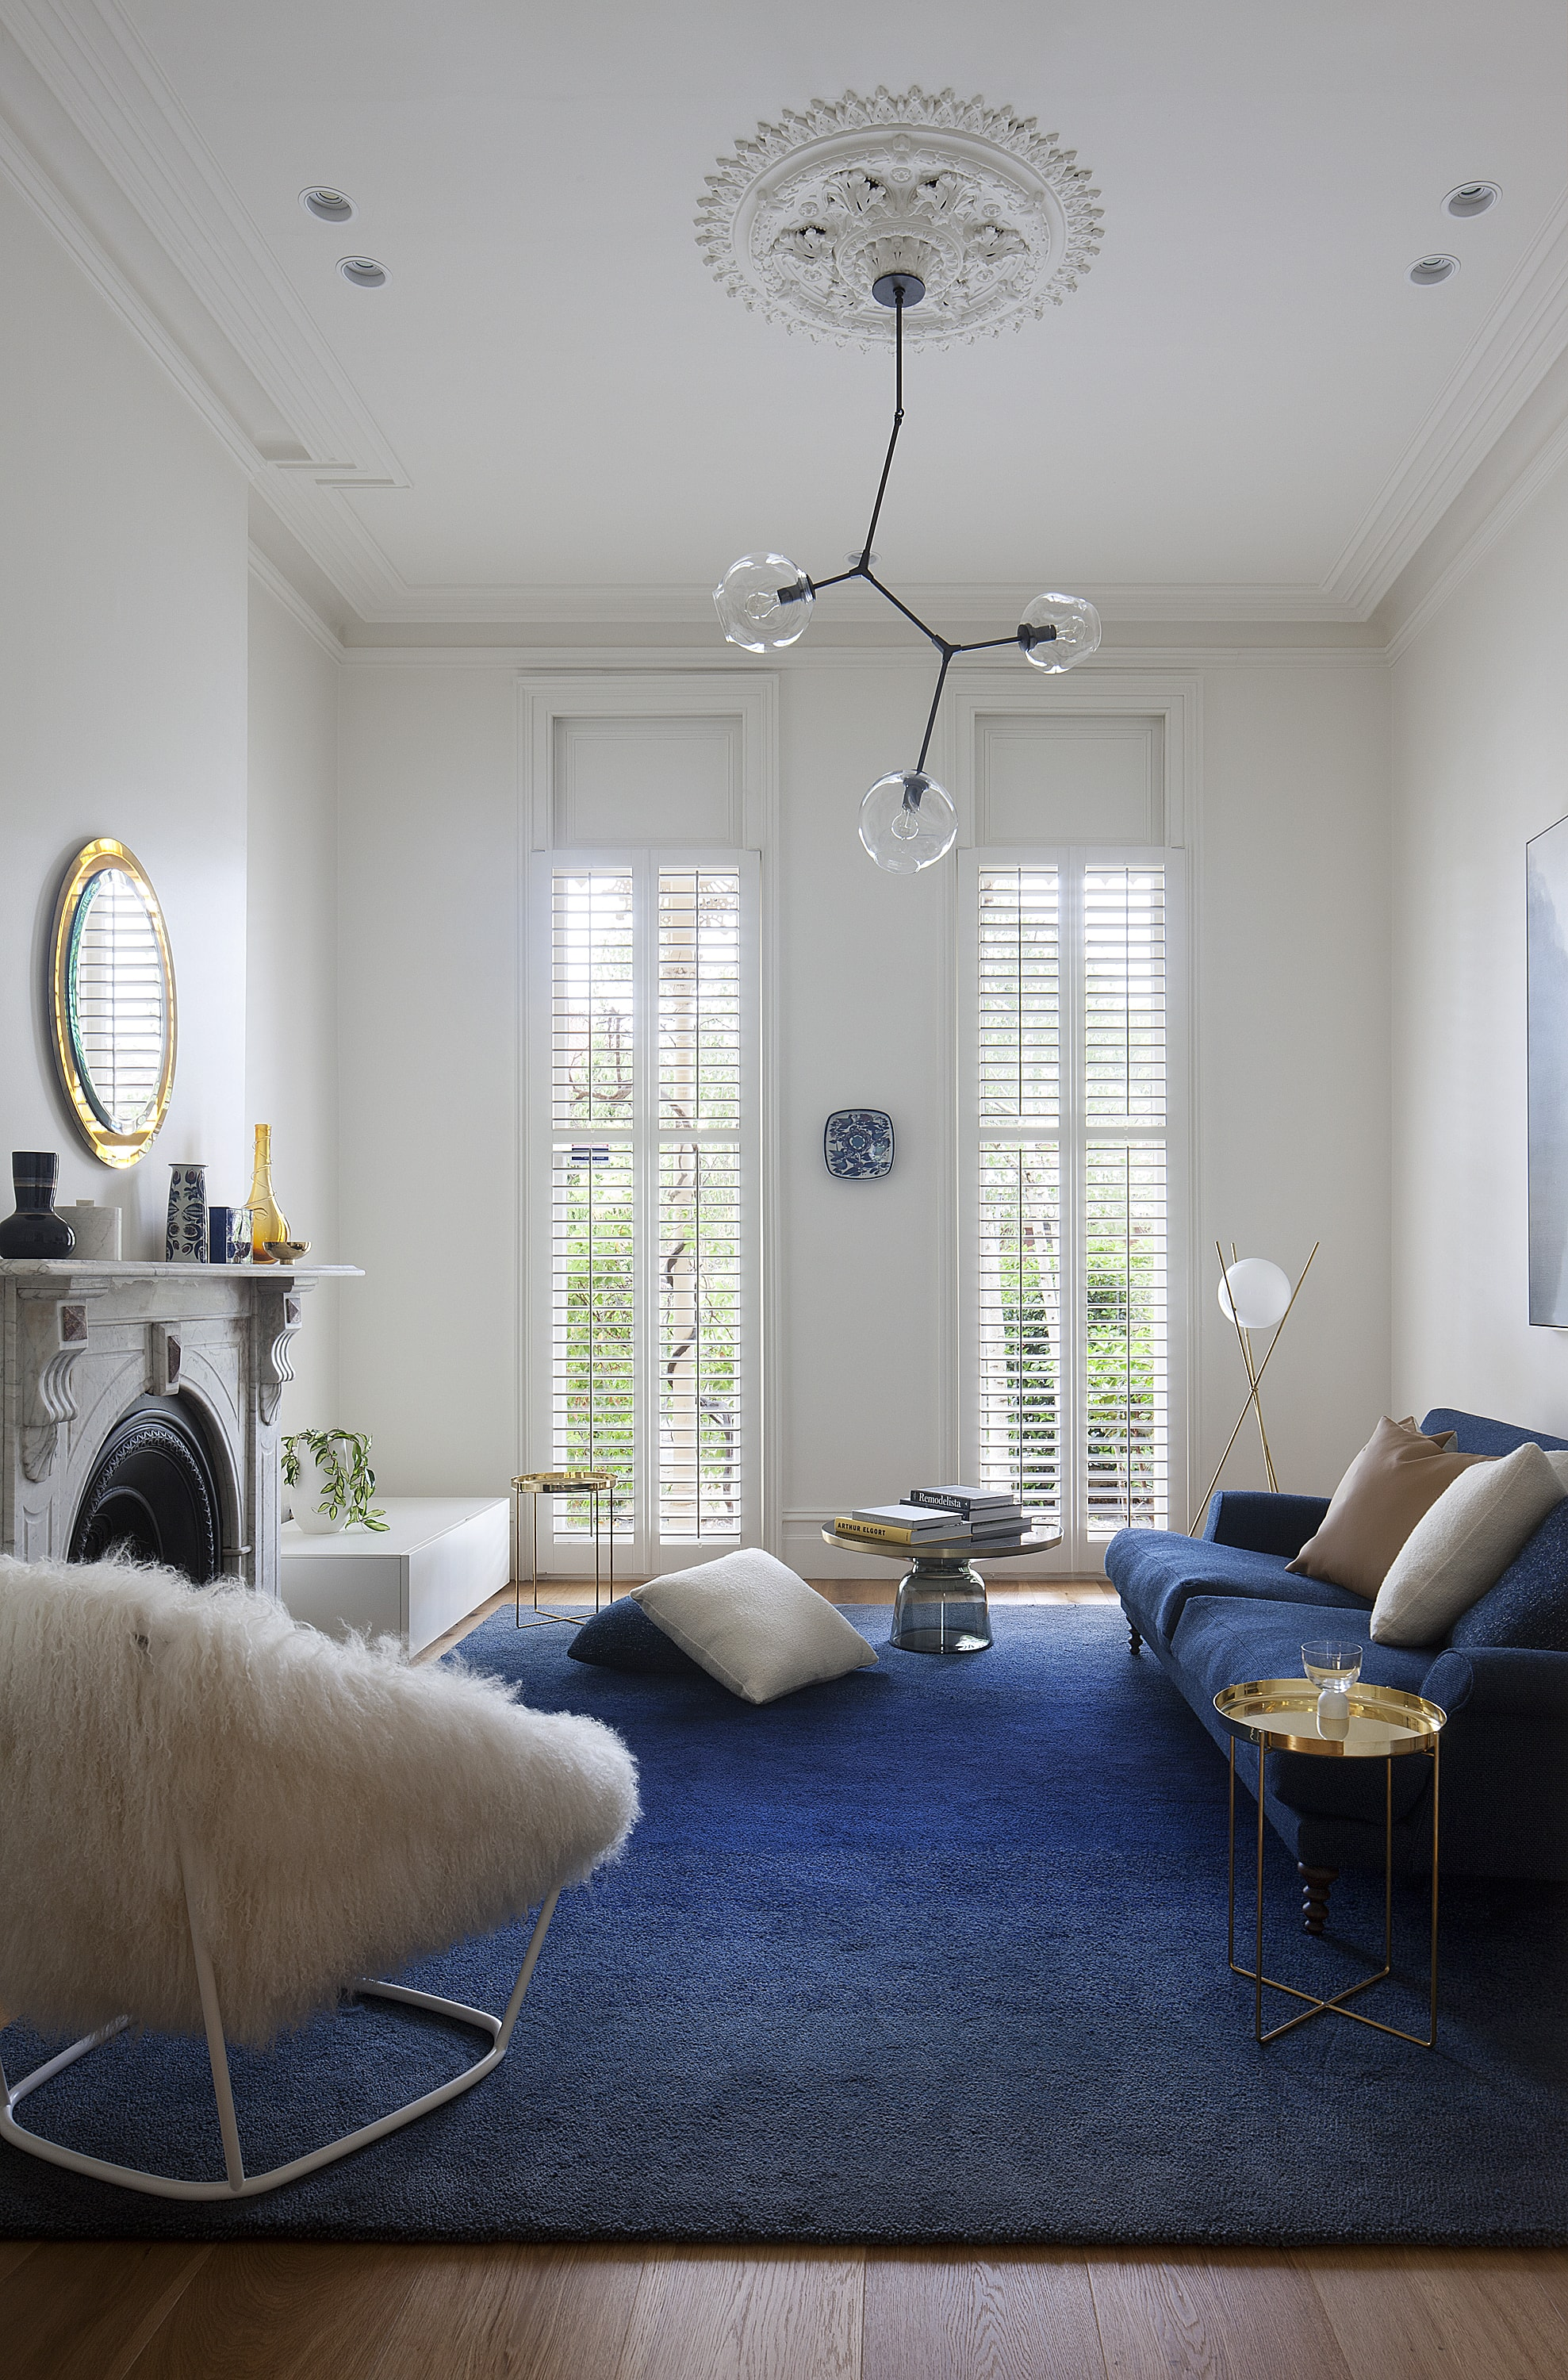 Local Australian Interior Design-South Yarra Residence Designed by Hecker Guthrie